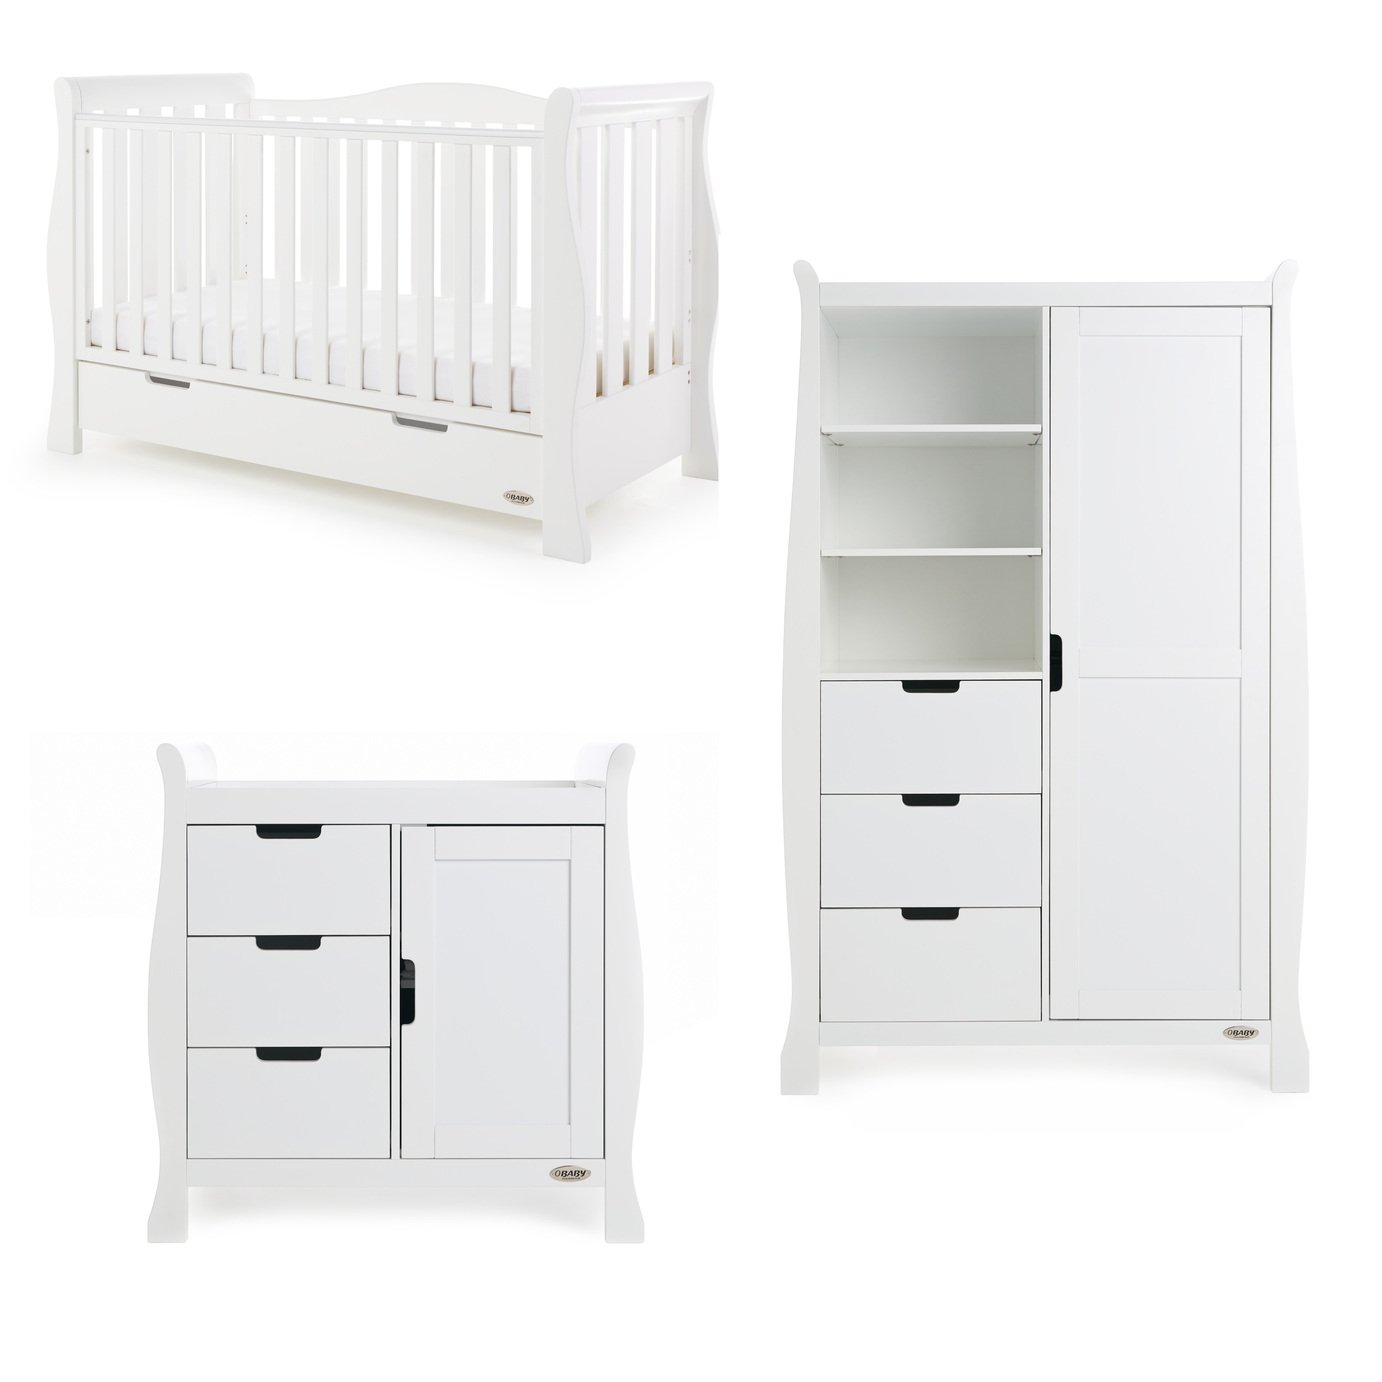 Obaby Stamford Luxe Sleigh 3 Piece Room Set - White